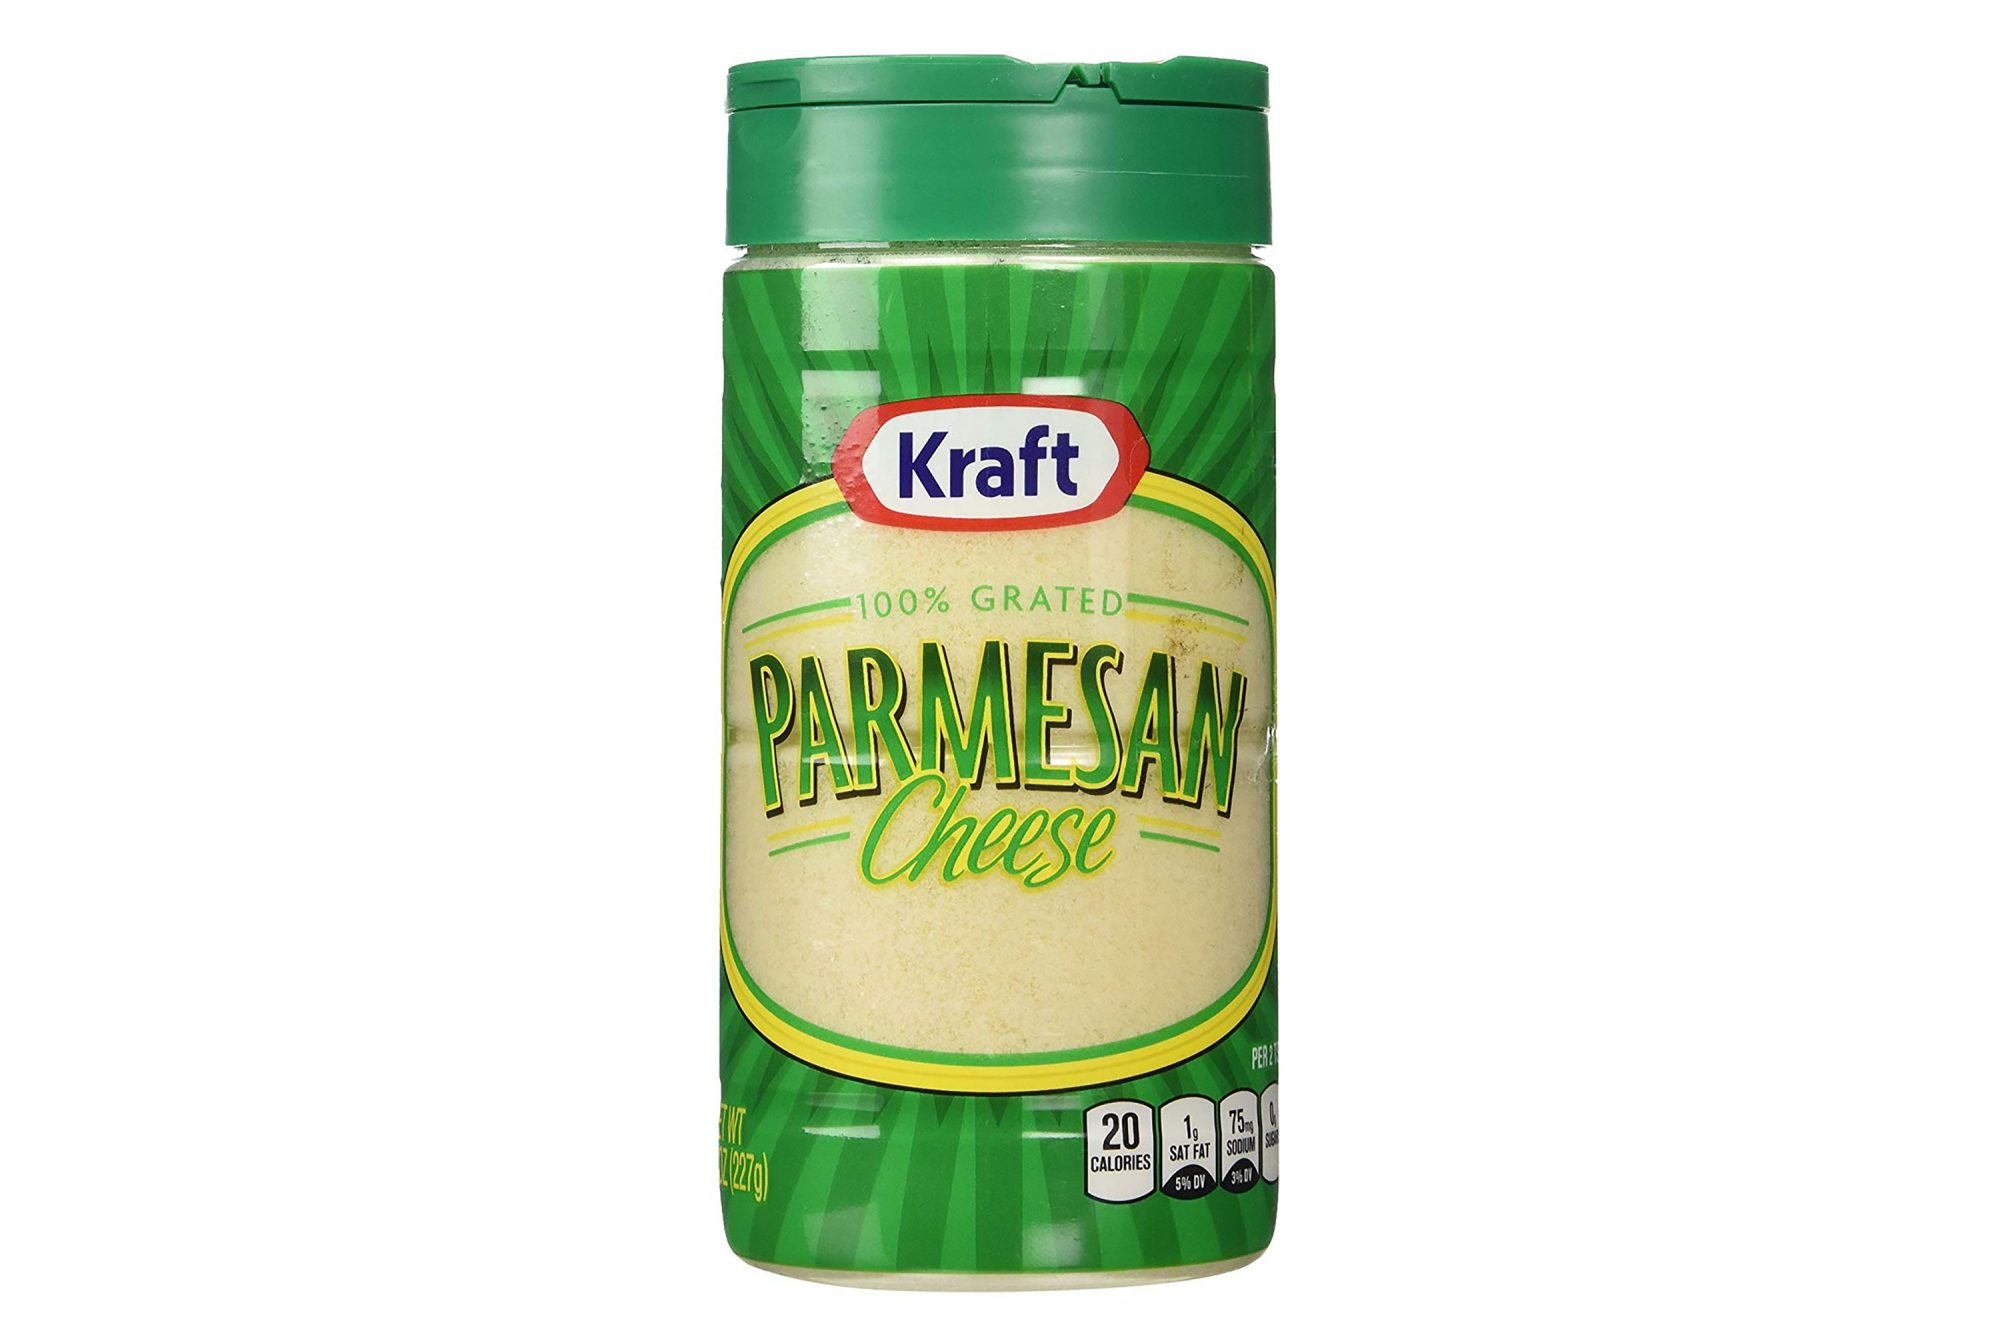 Kraft Parmesan-Cheese-Can